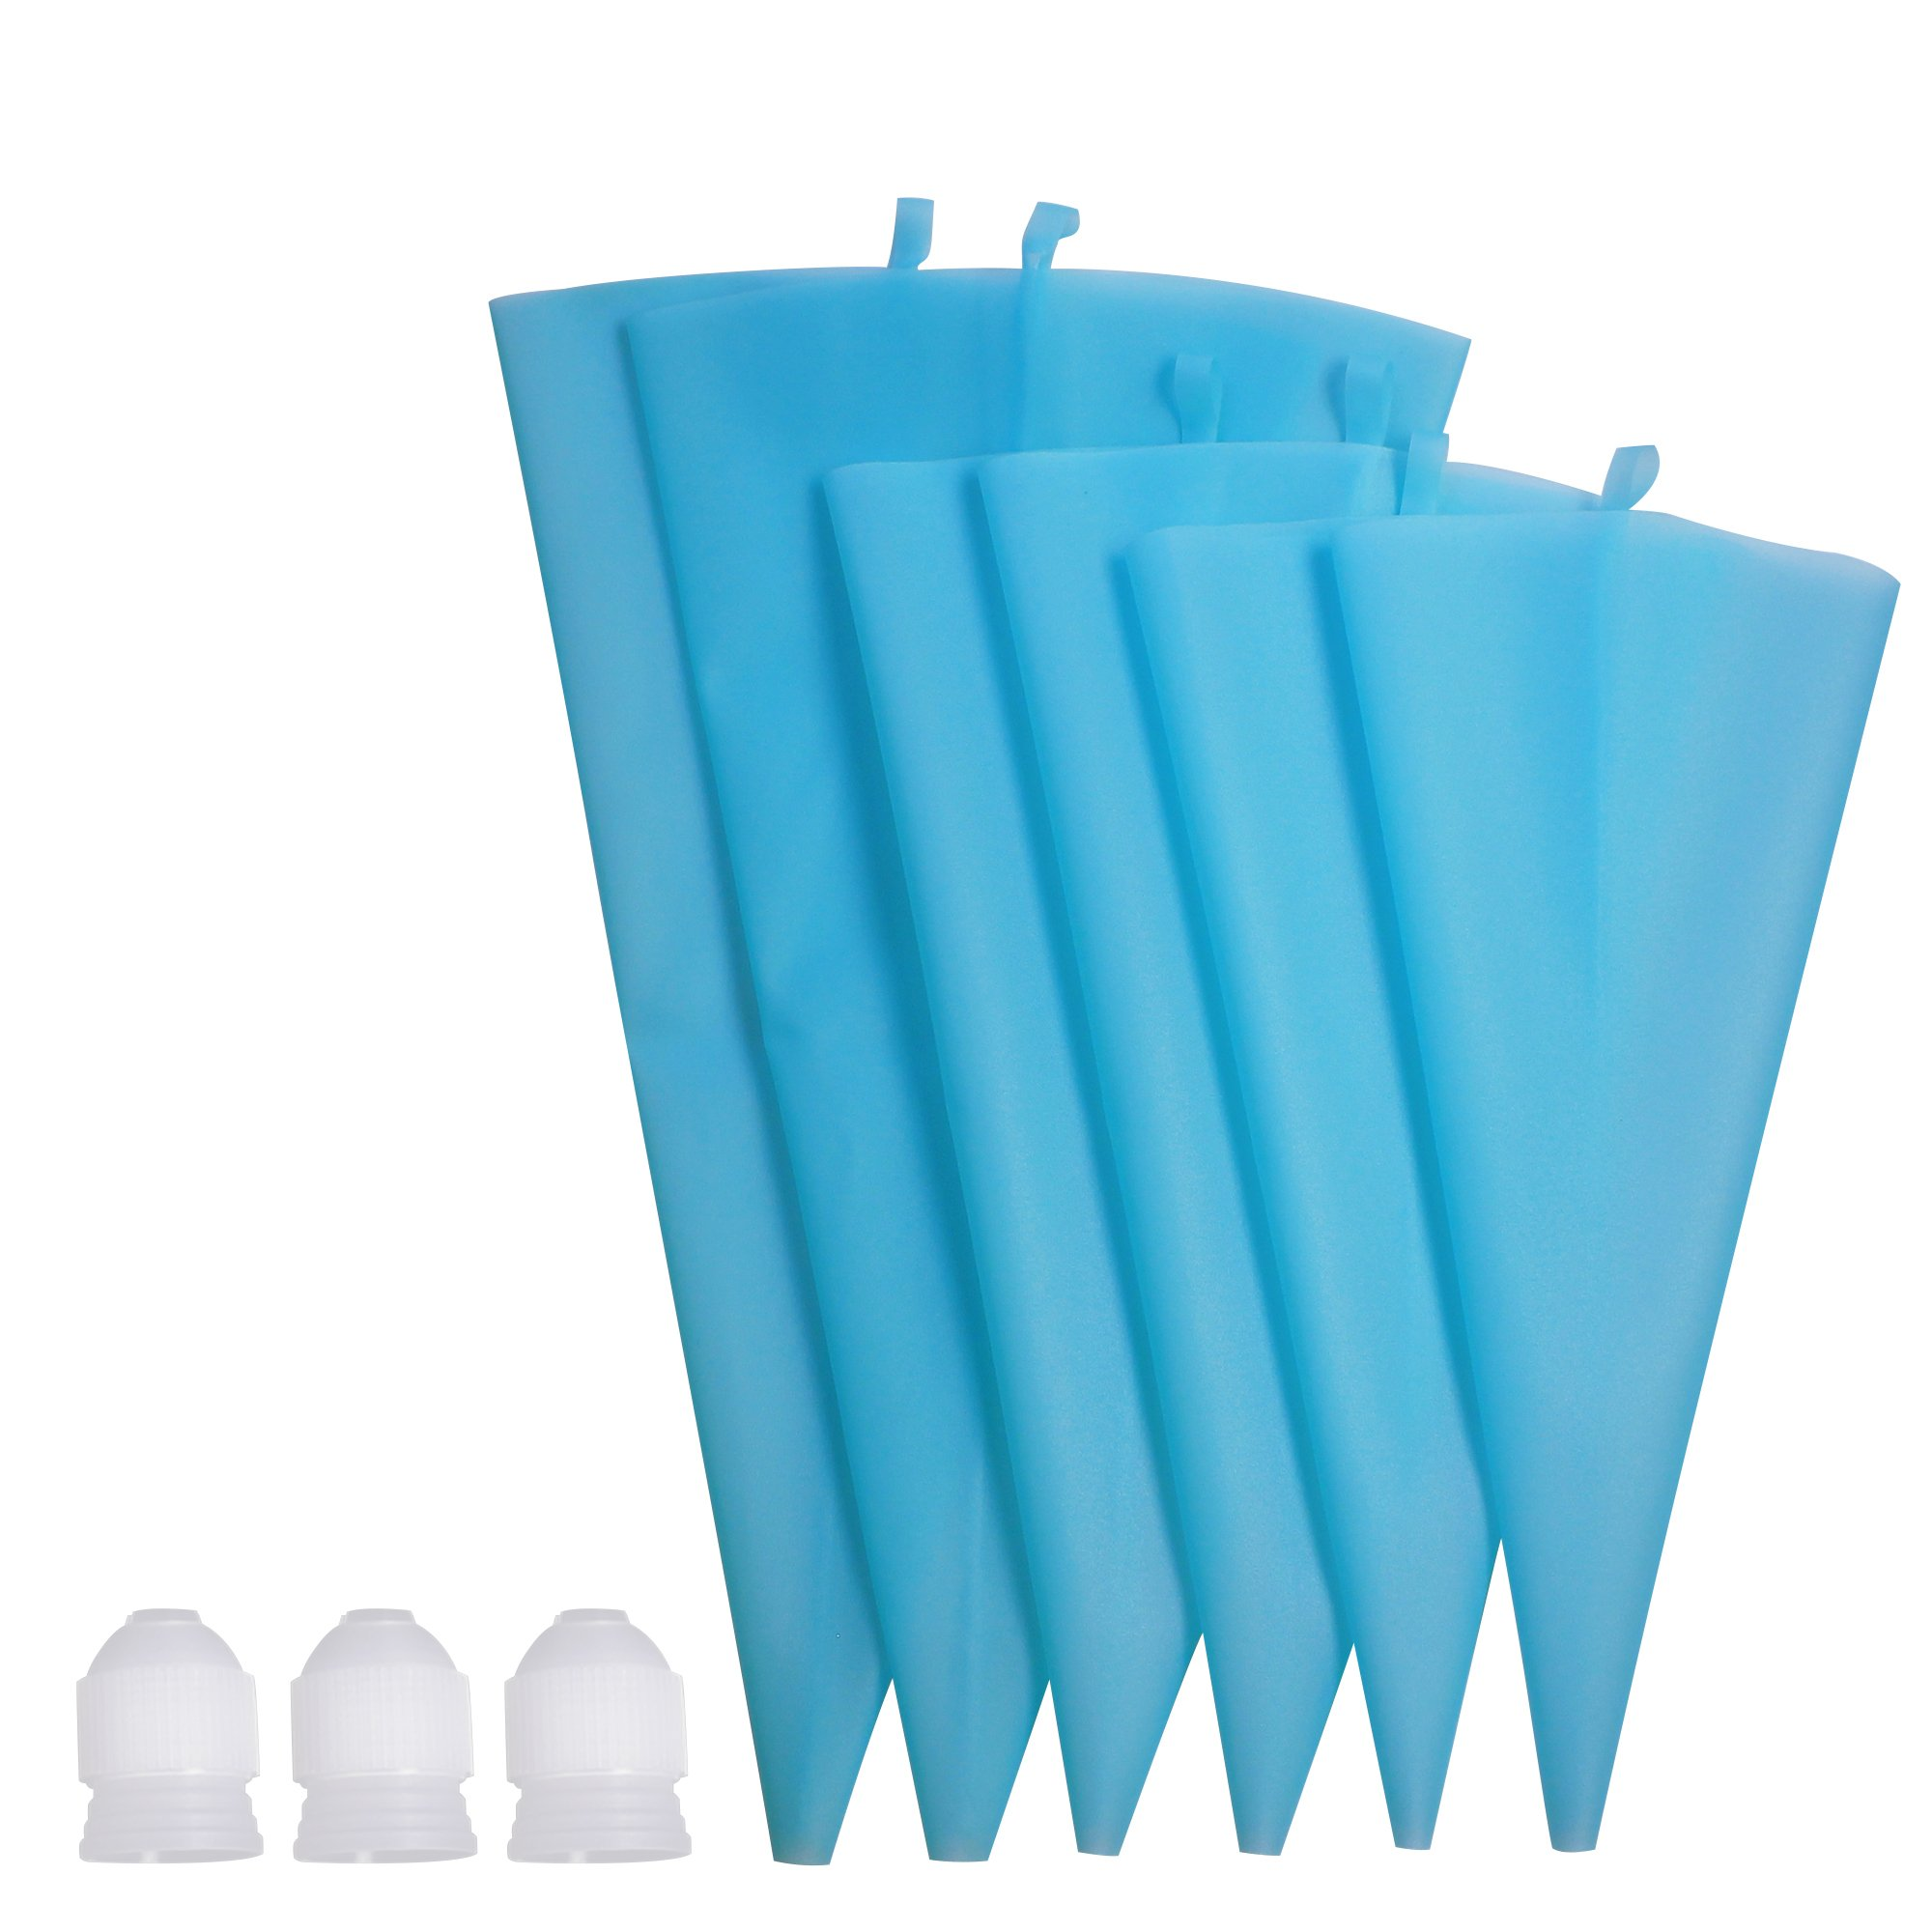 Losska 9Pcs Silicone Pastry Bag Set - 3 Sizes Thickened Reusable Piping Bags (S+M+L) with 3 Icing Couplers for Cake Decorating Tips